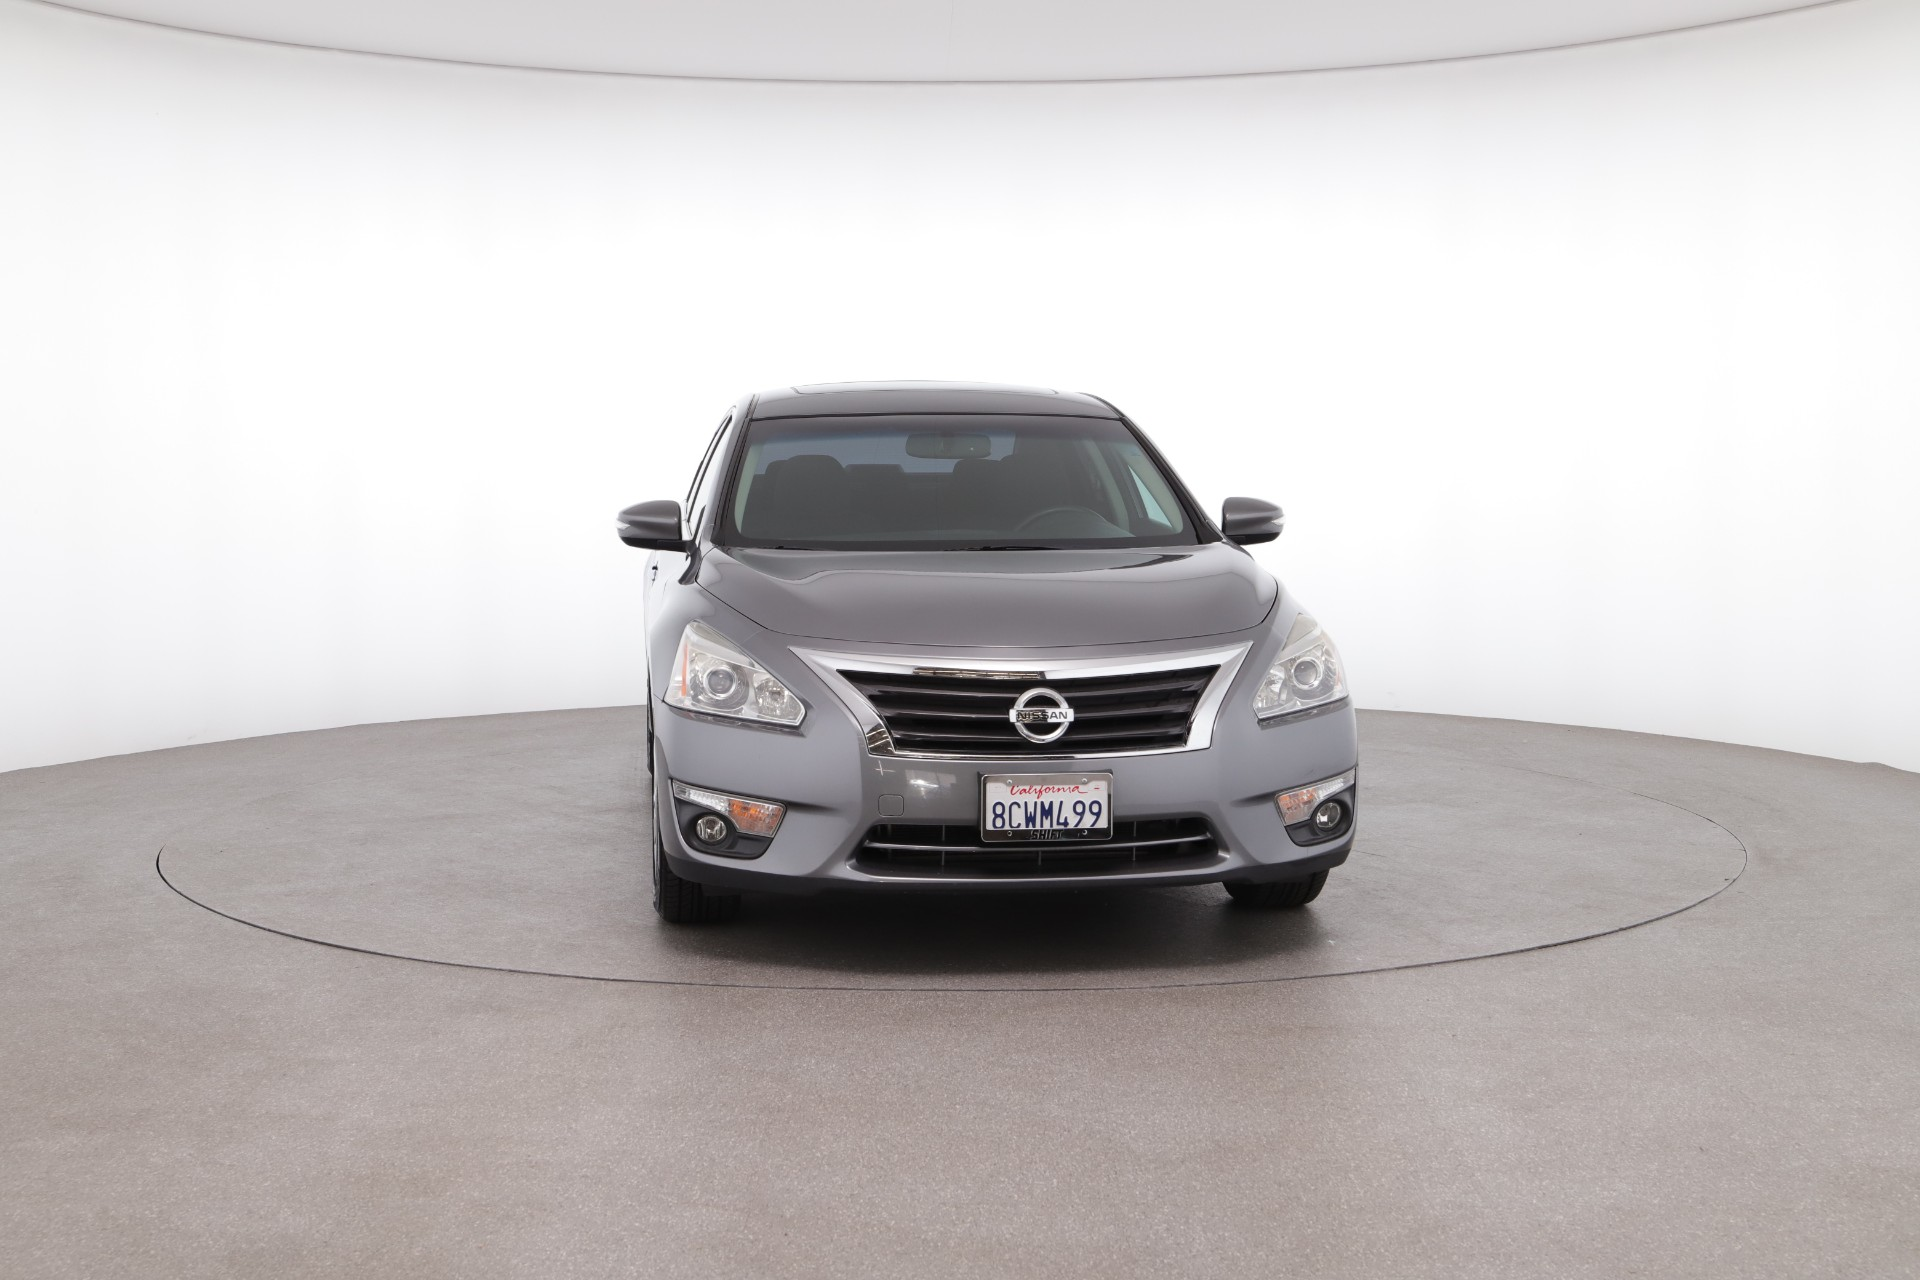 How Much Is A Used Nissan Altima?